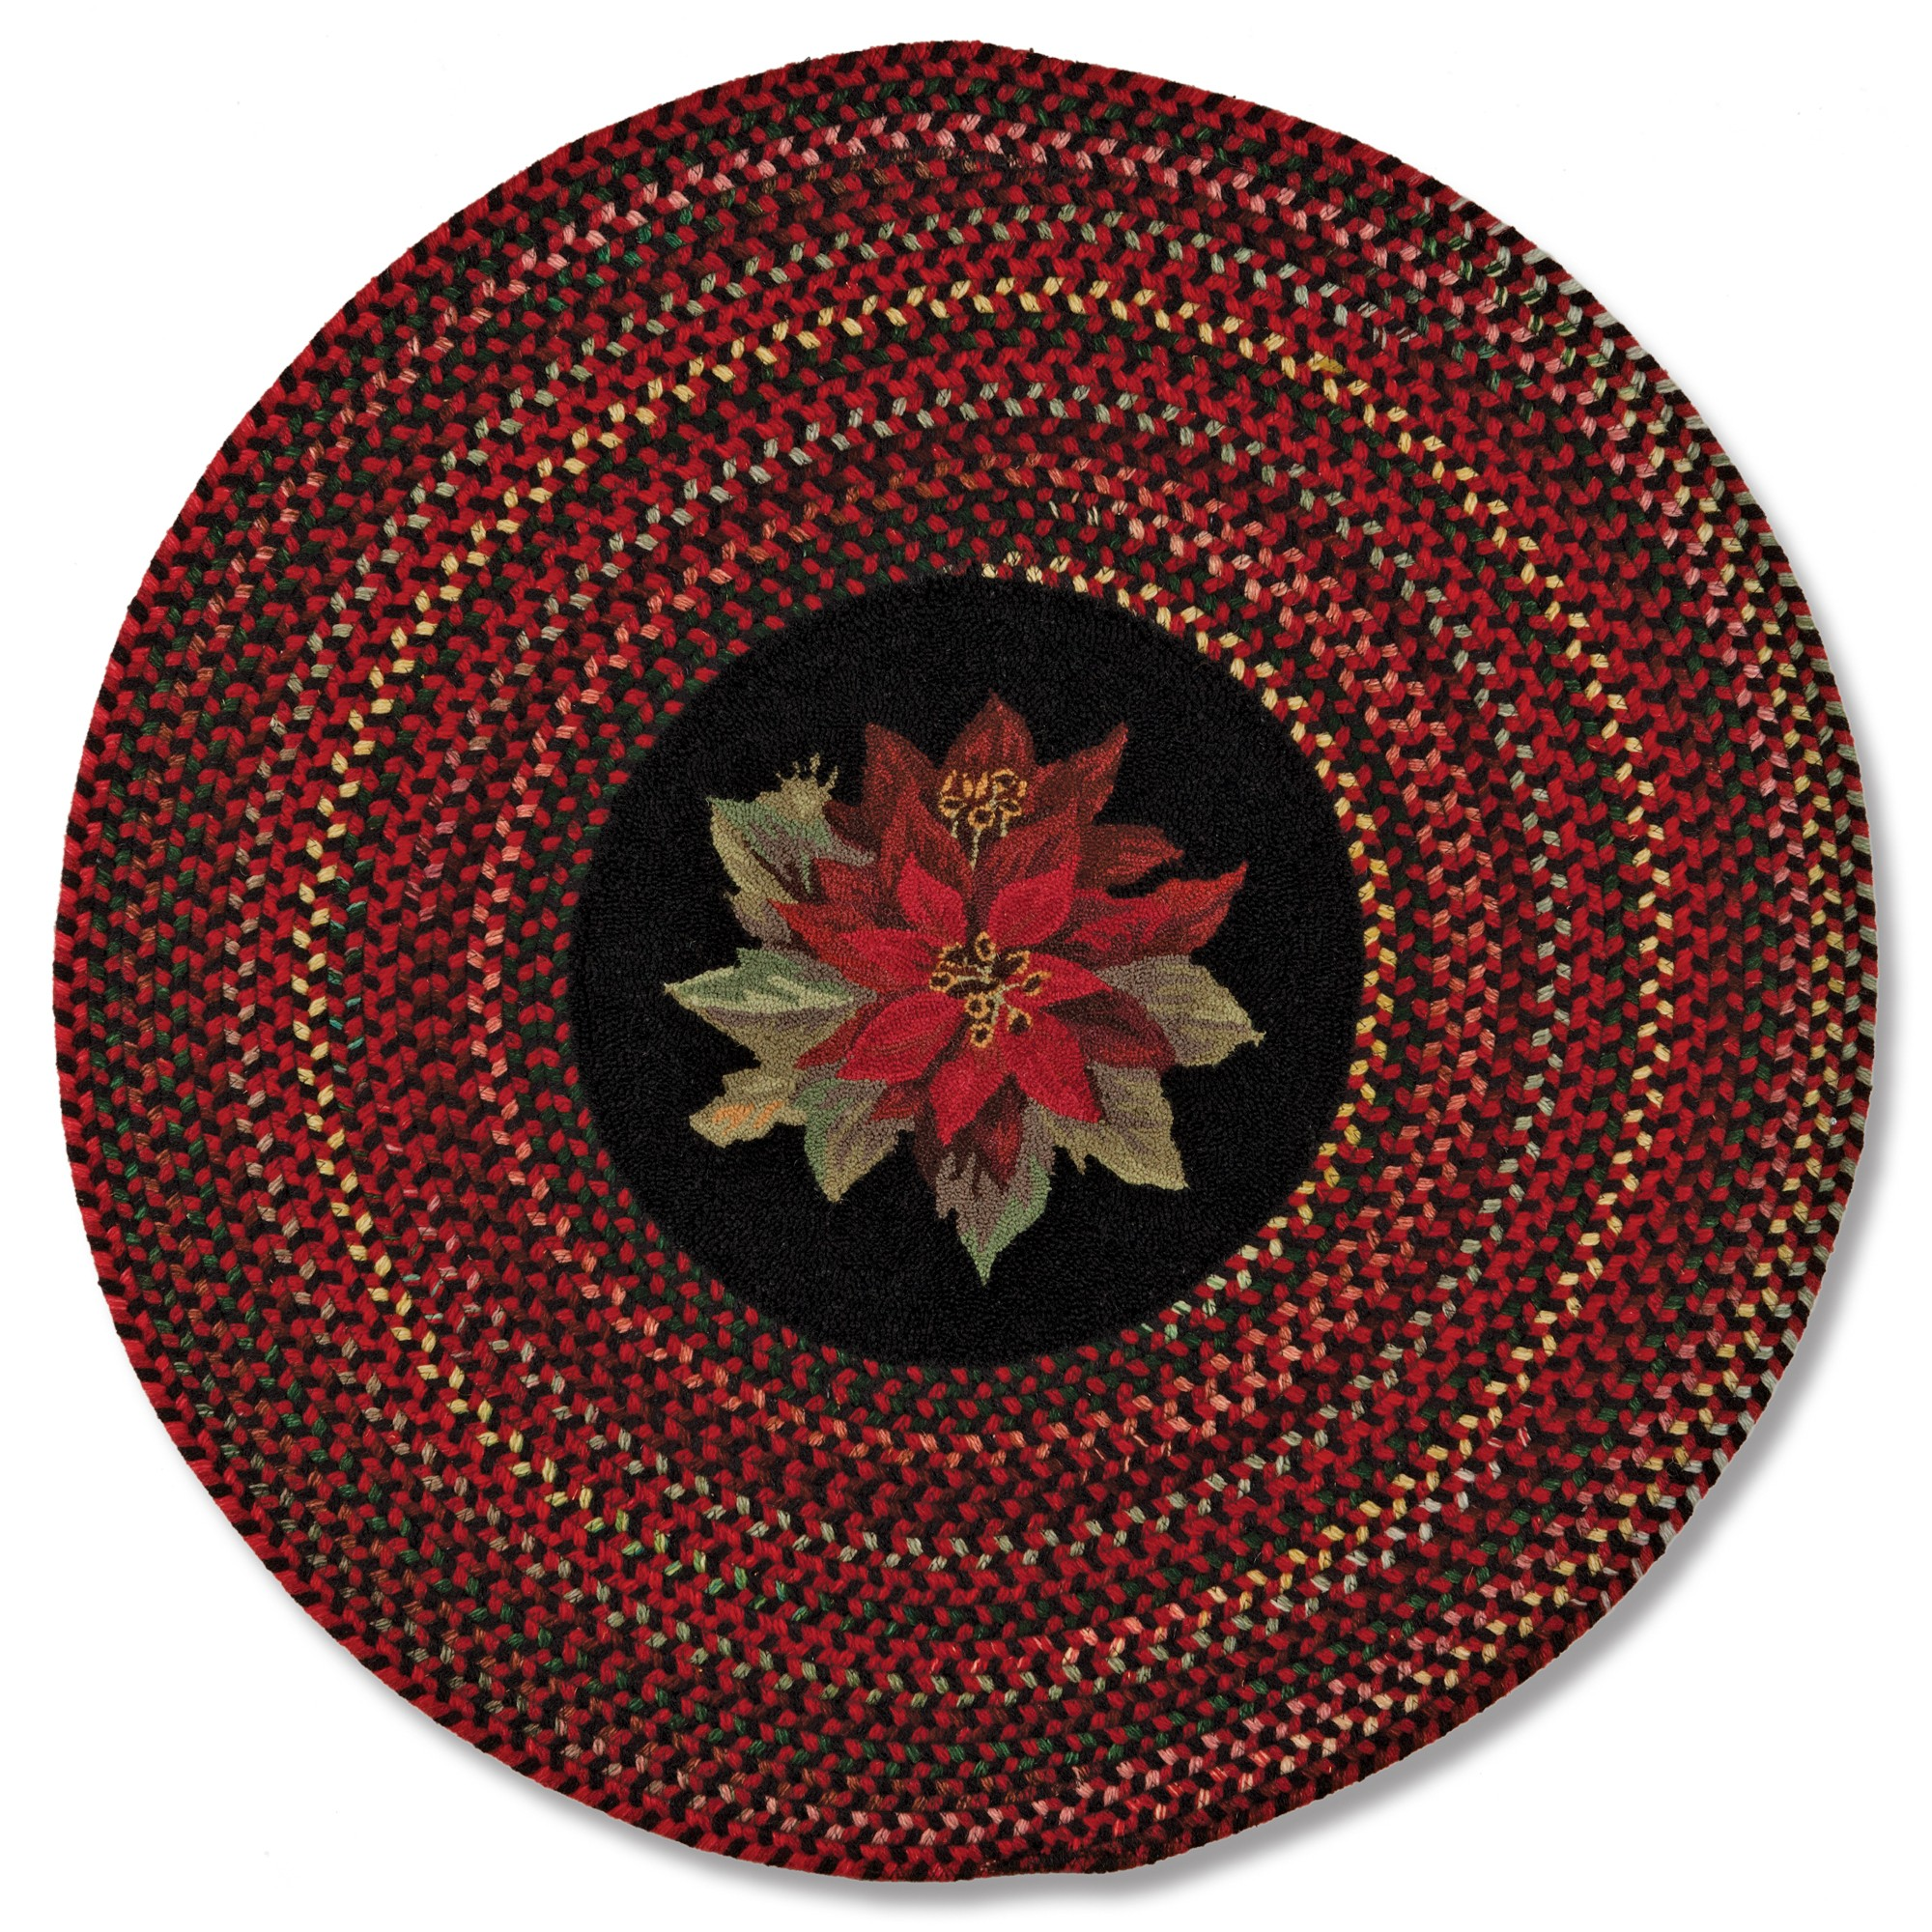 lovely round multicolor braided rugs with flower motif at center for charming floor decor ideas